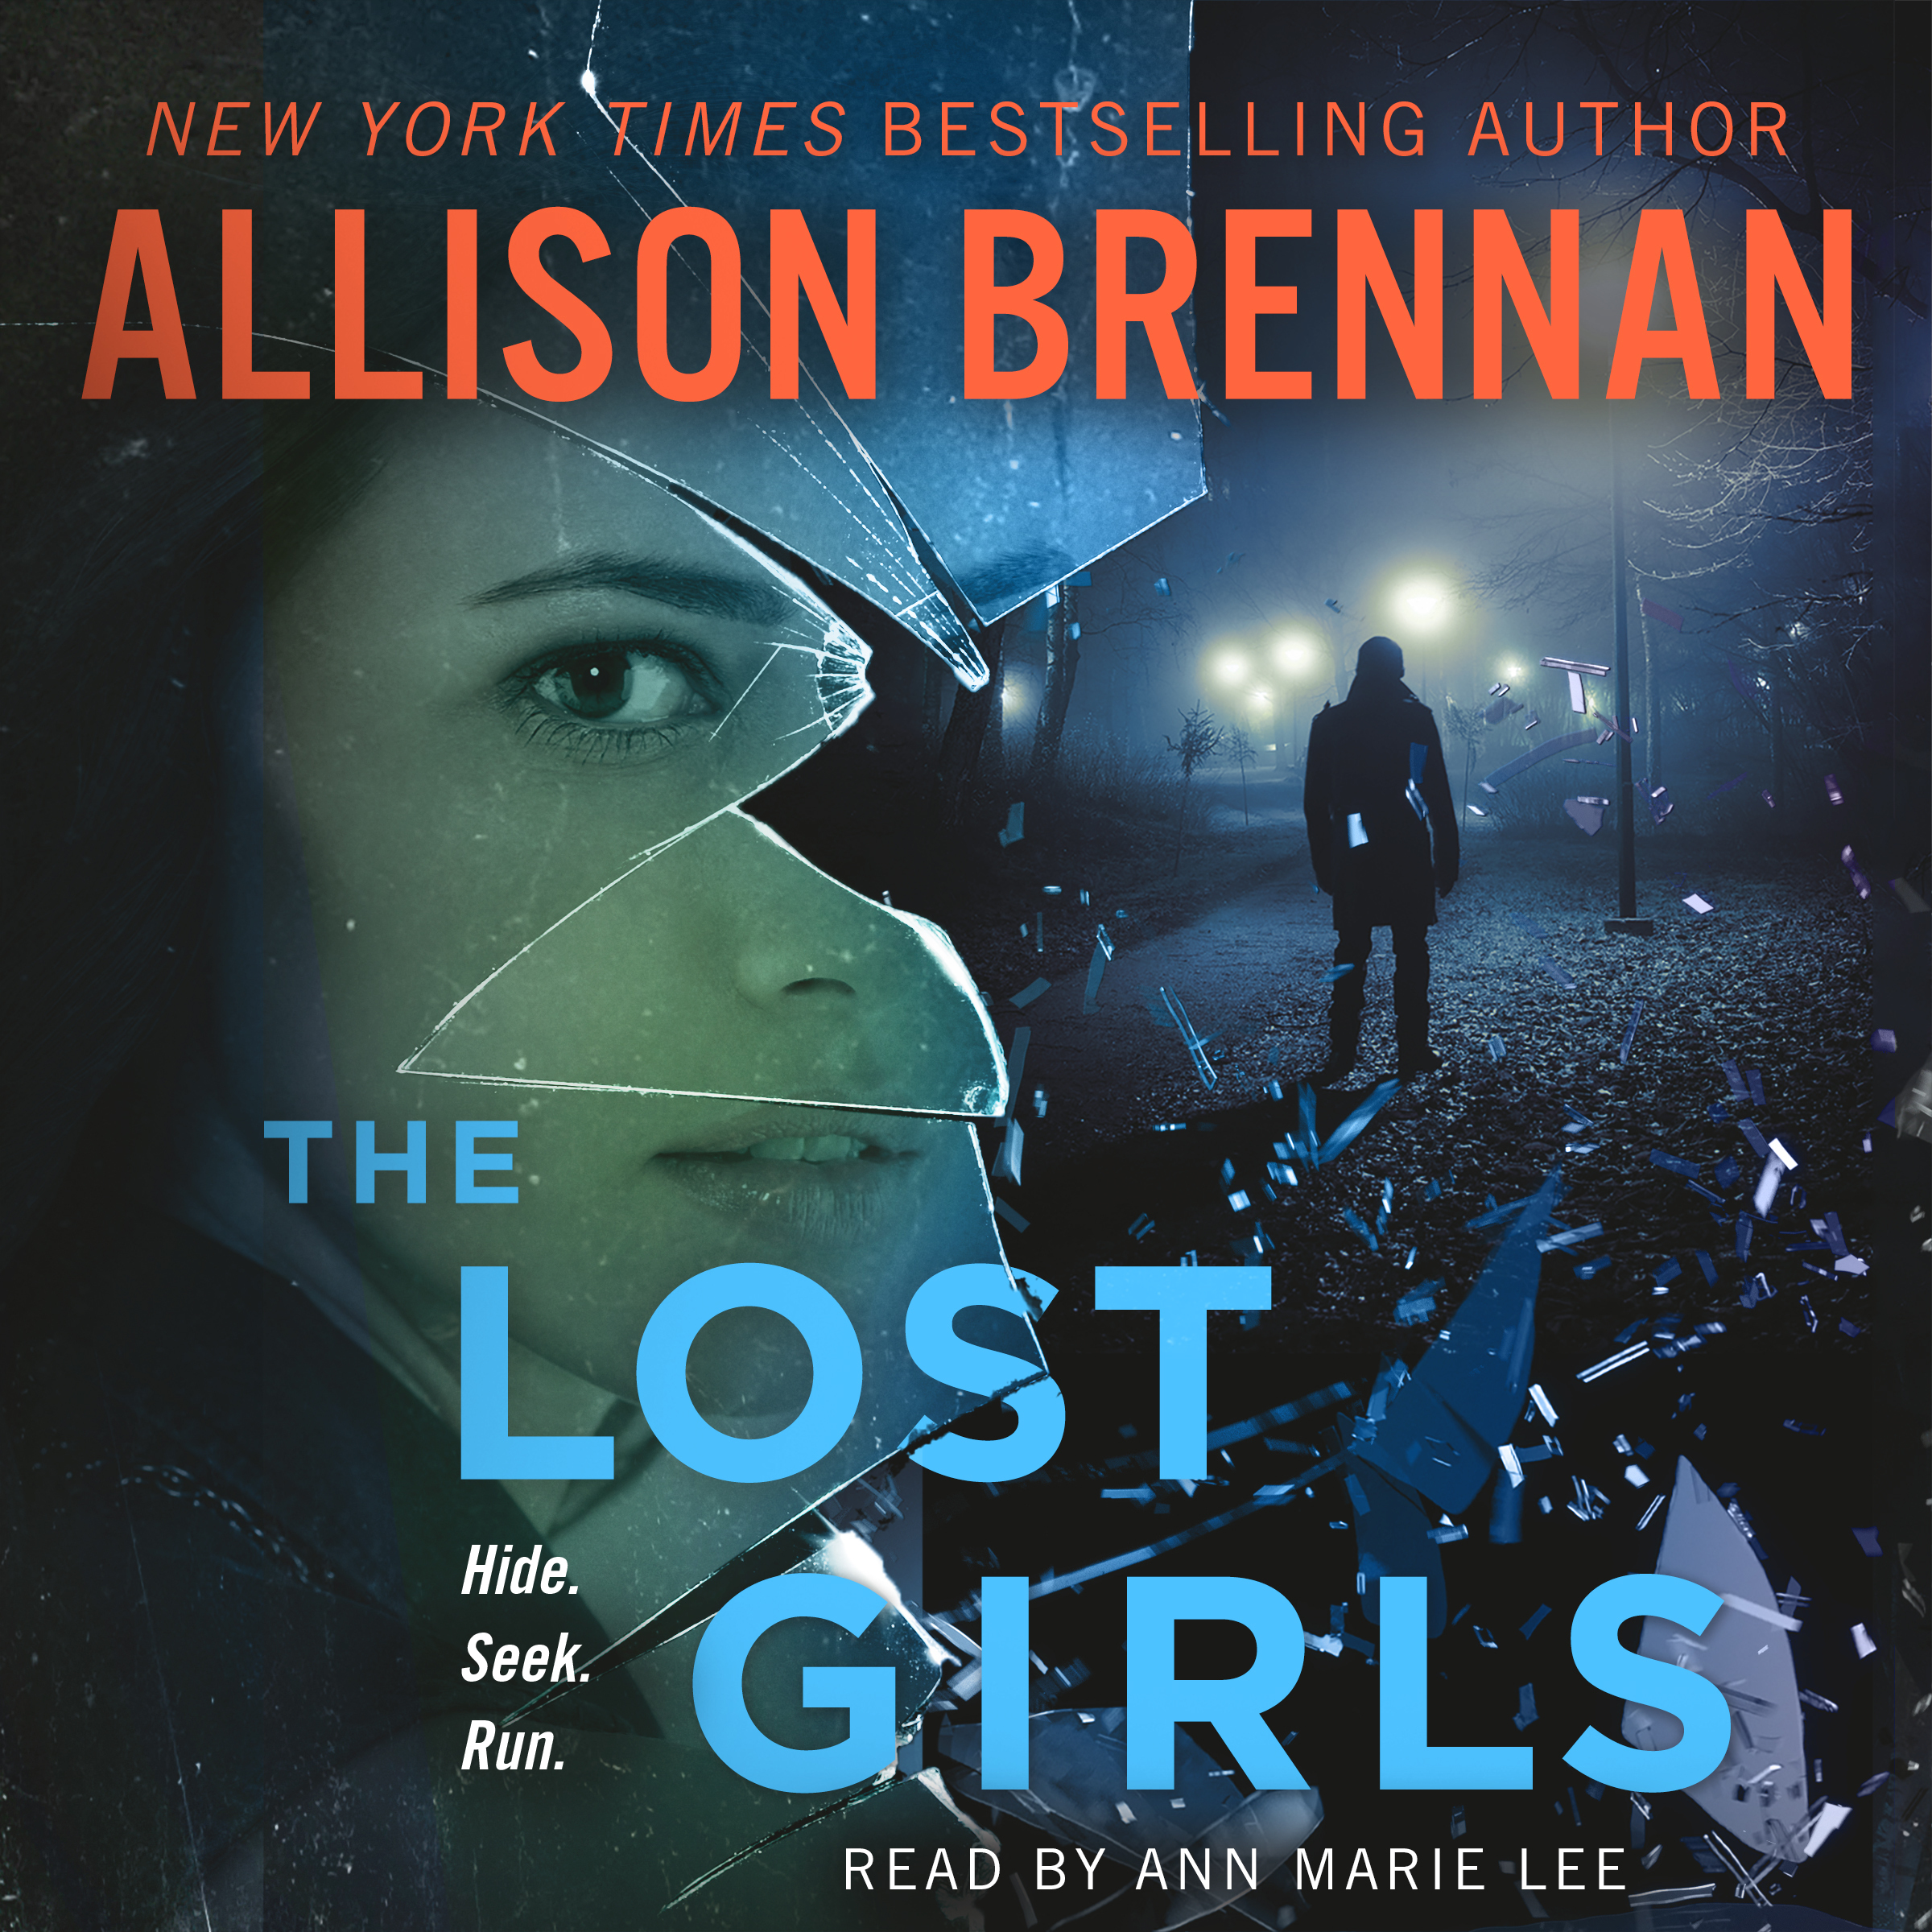 The Lost Girls by Allison Brennan (MacMillan Audio 2016)